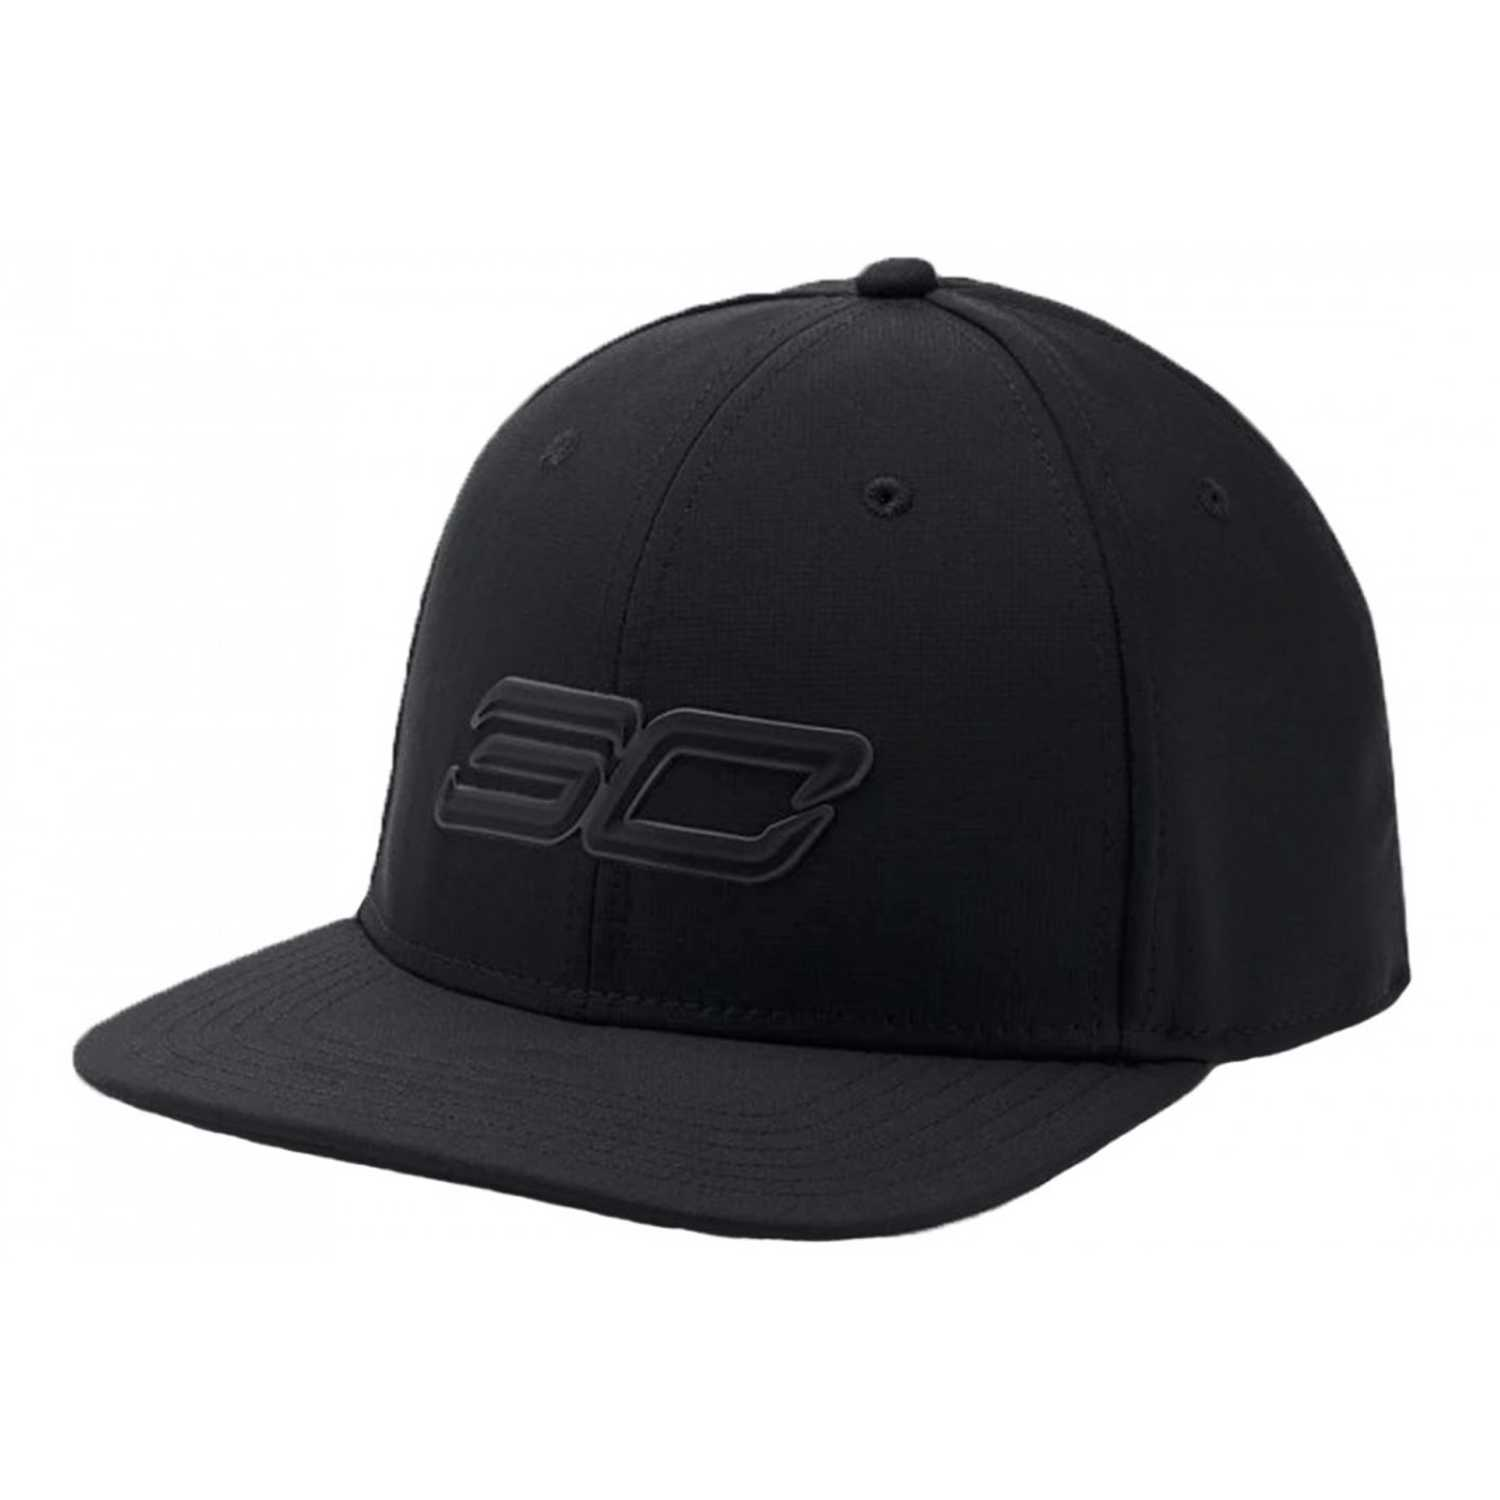 f36aa71c21ec3 Gorro de Hombre Under Armour Negro men s sc30 core 2.0 cap-blk ...